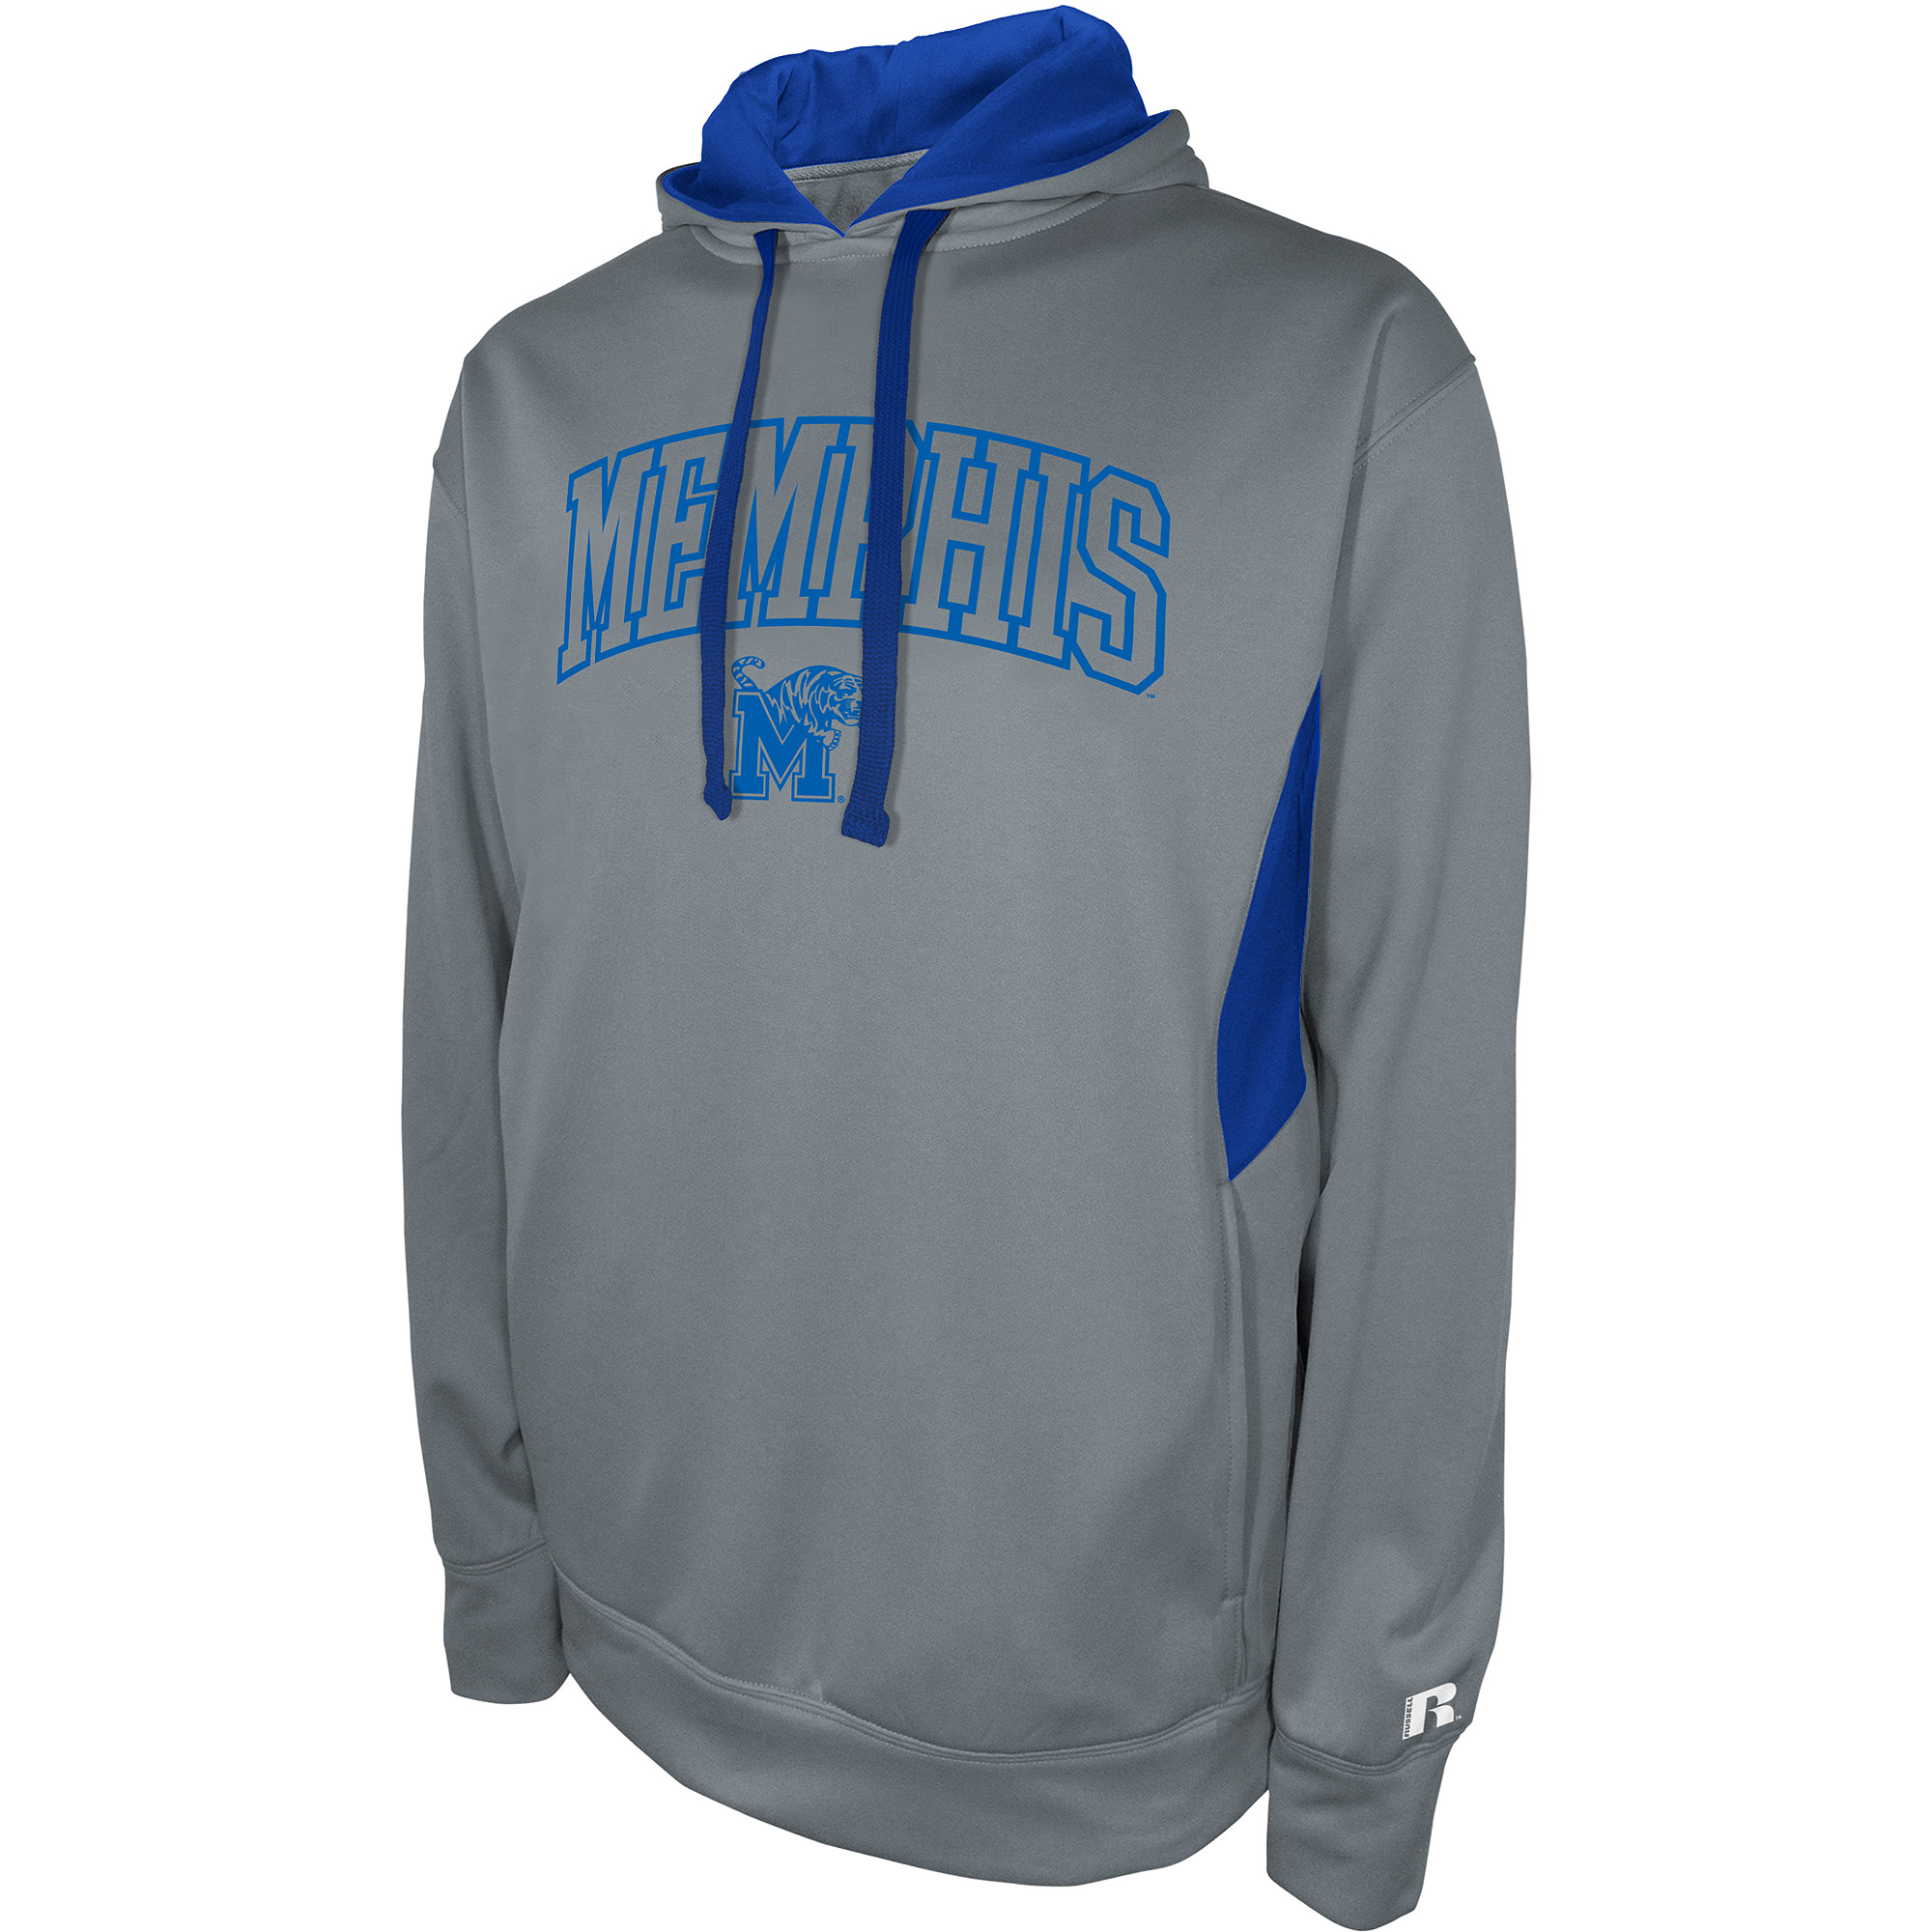 Russell NCAA Memphis Tigers, Men's Pullover